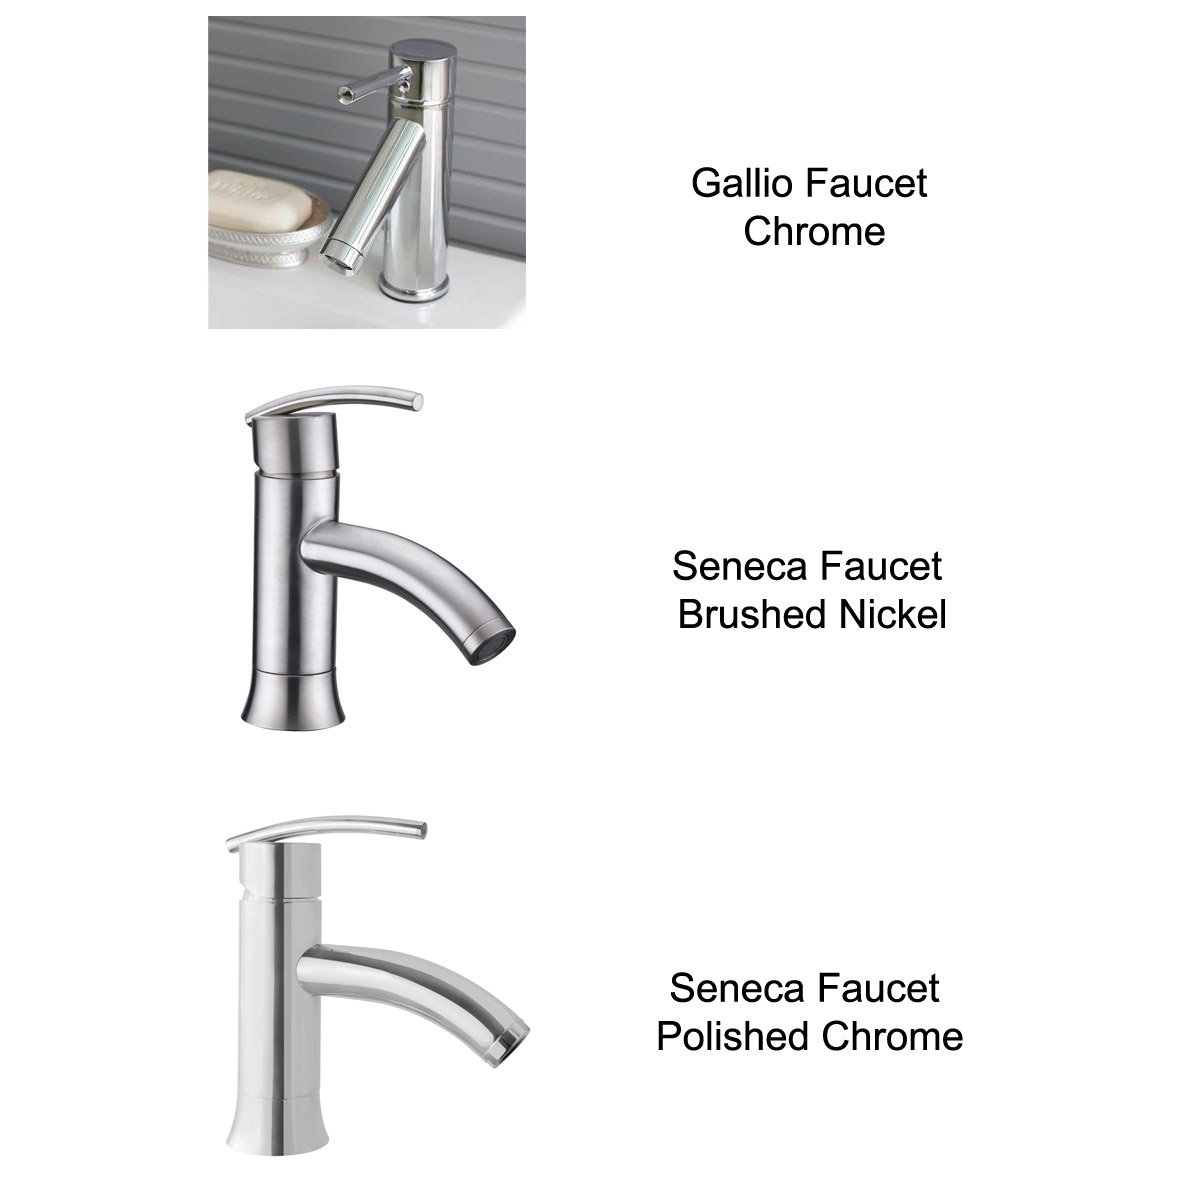 Optional Faucets